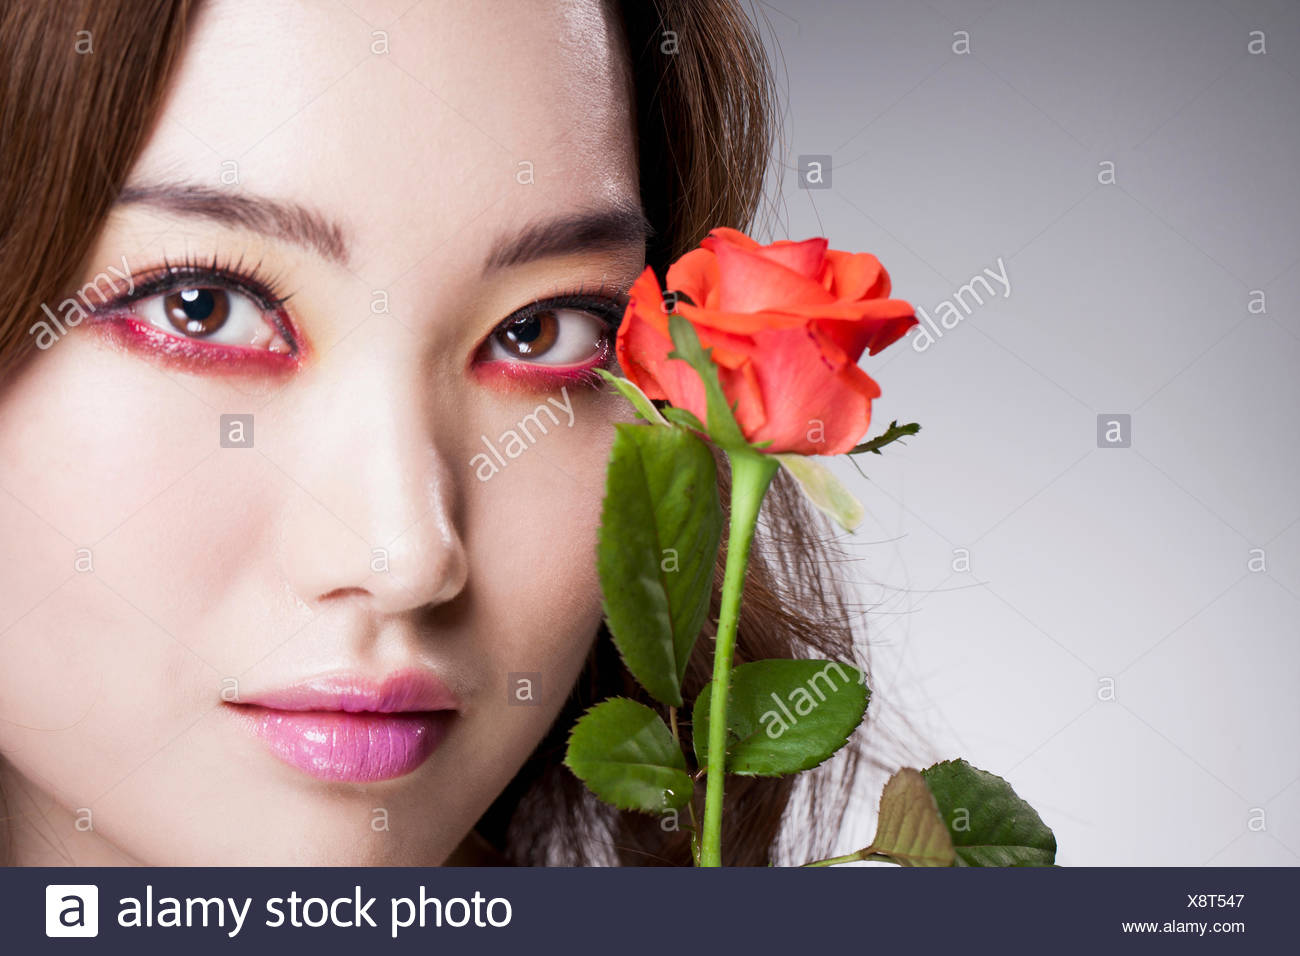 Portrait of young Korean woman in rwd eye liner posing with a red rose - Stock Image